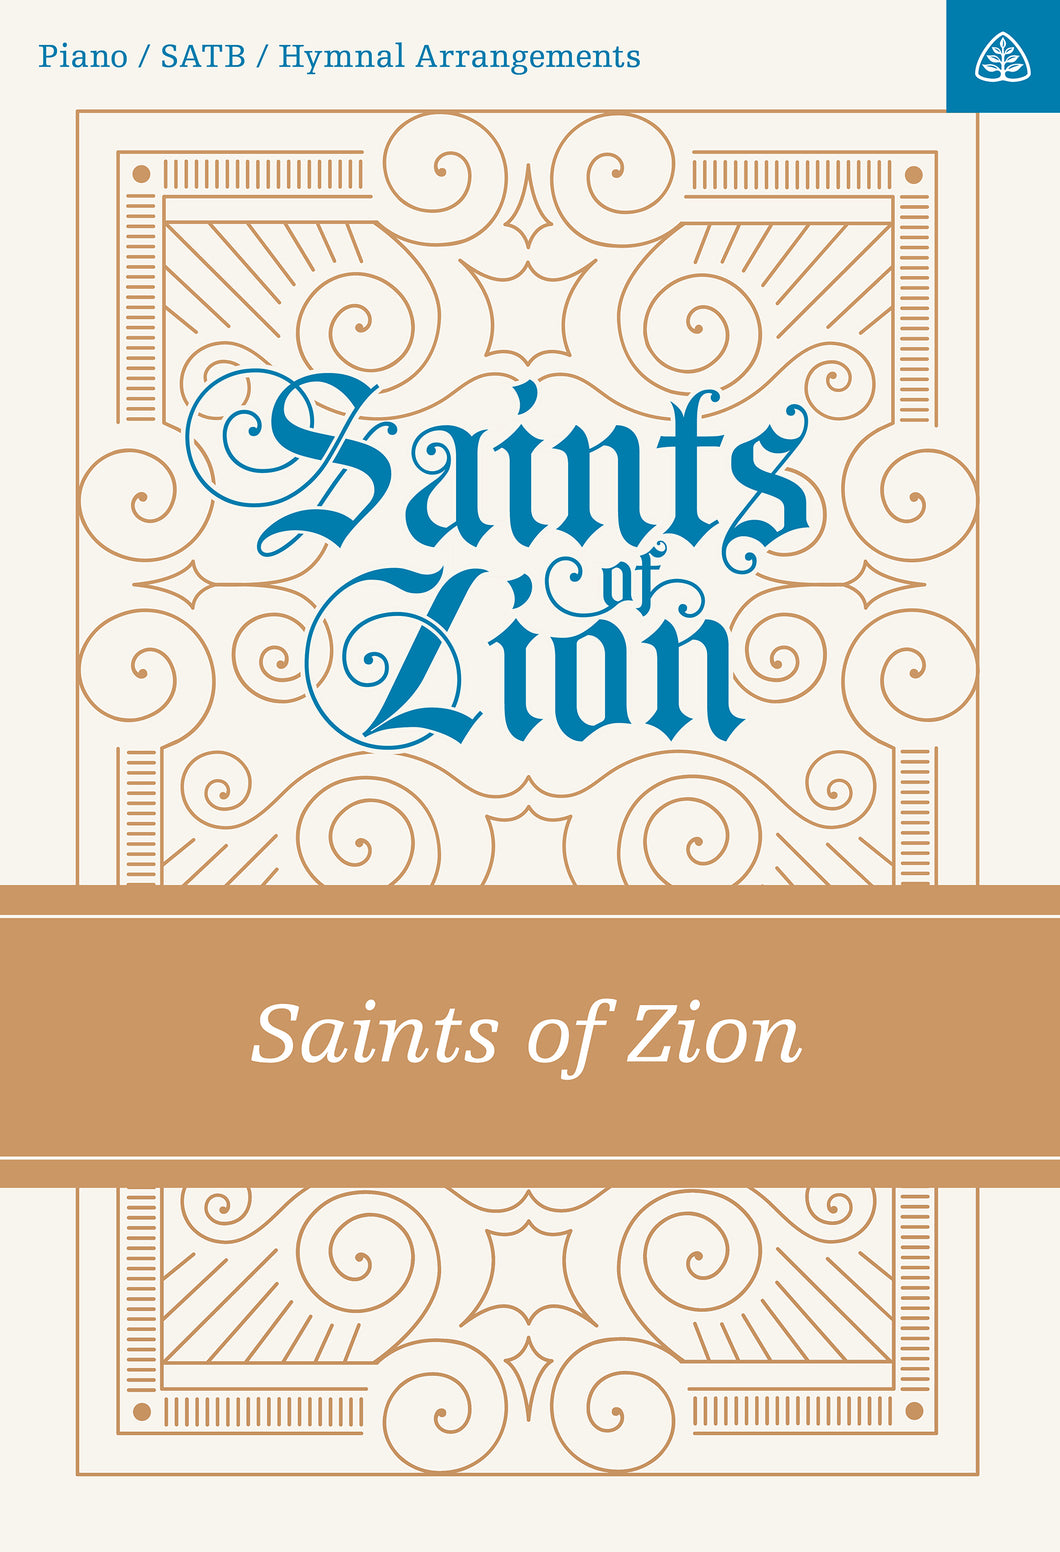 Saints of Zion (sheet music) — Sheet Music SATB Digital  (1 License)